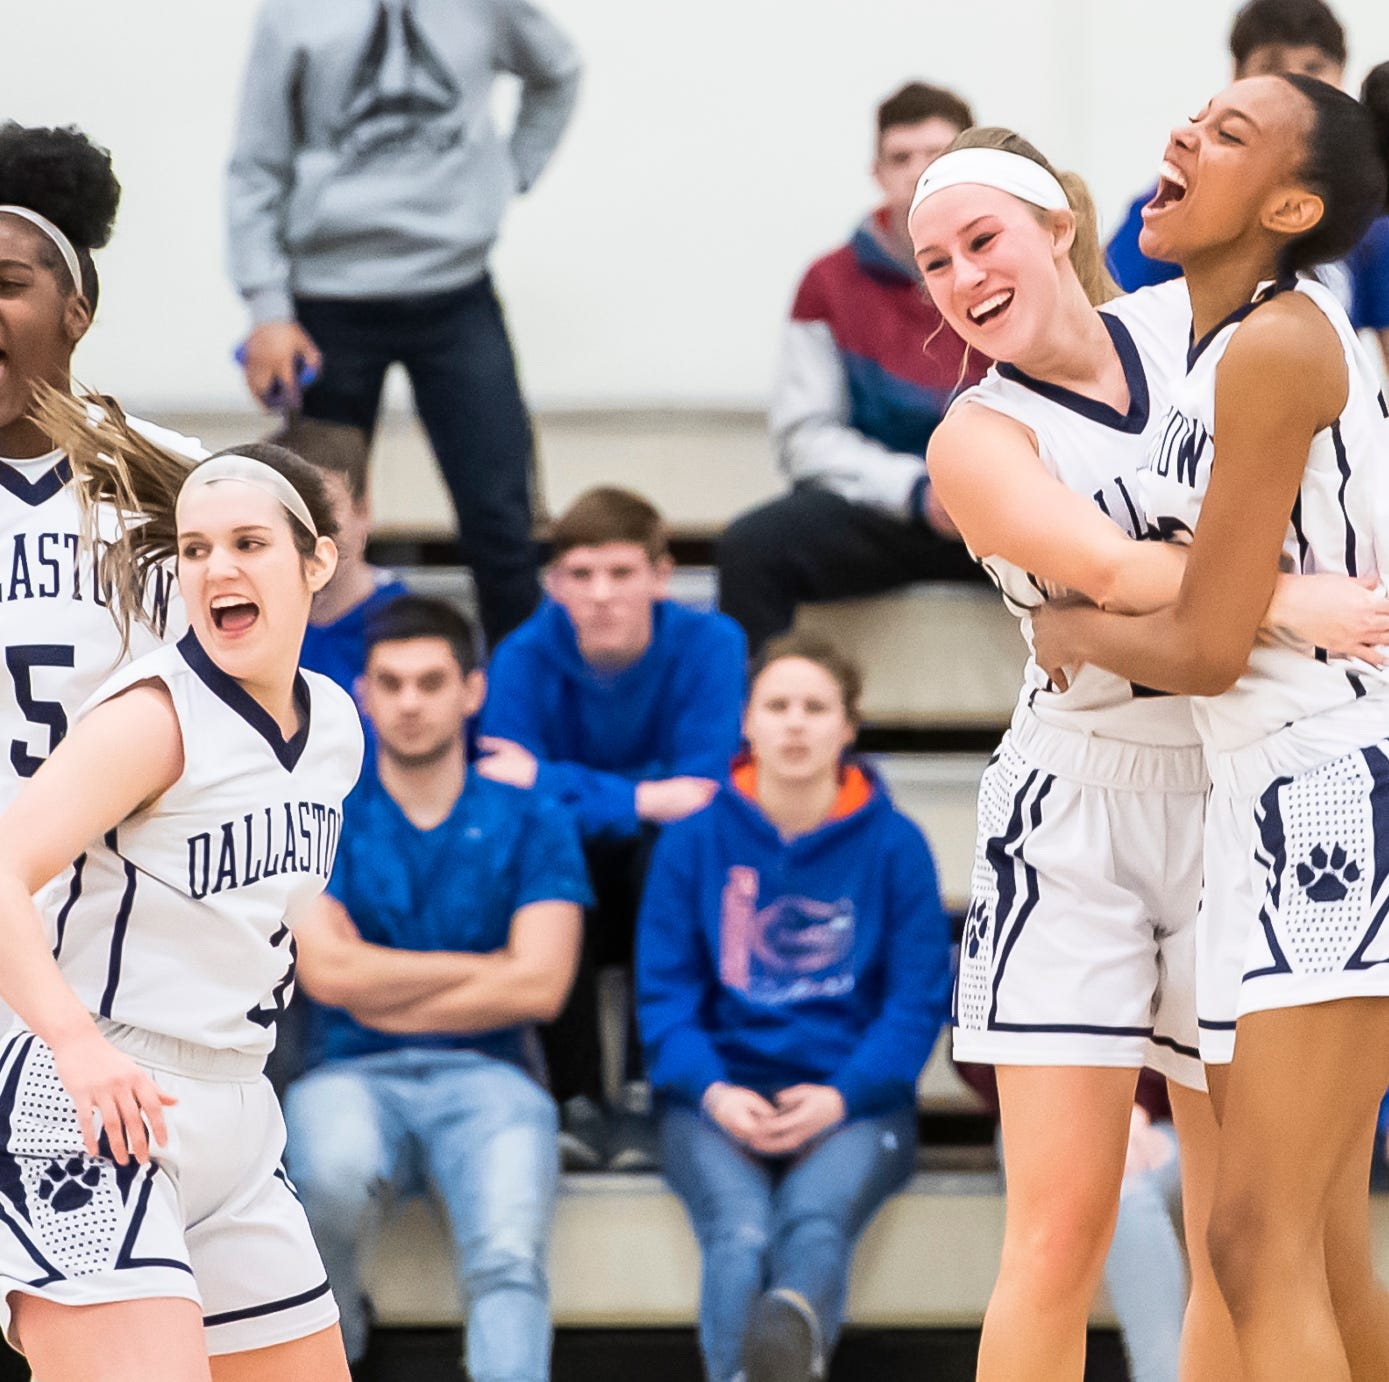 'We stuck together': Dallastown finds redemption, topping Spring Grove to win league title